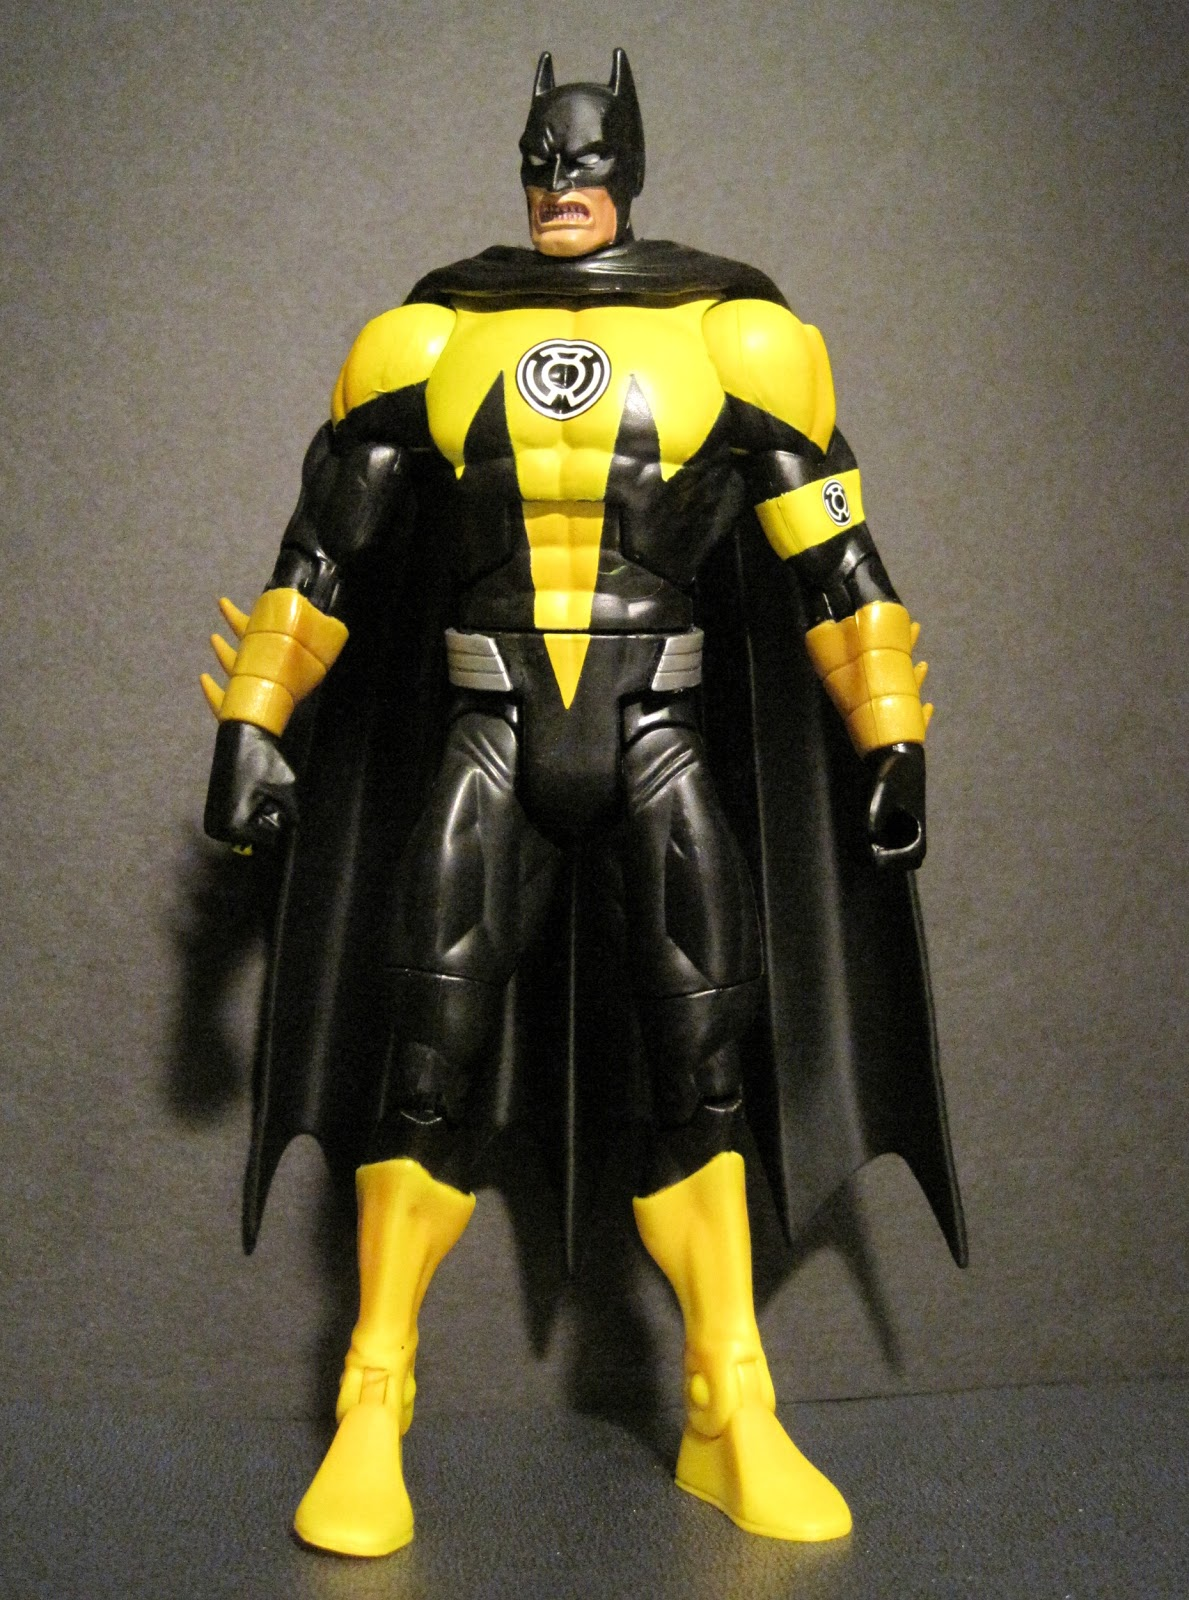 Buy DC Universe Classics Sinestro CorpsYellow Lantern Scarecrow Collectible Figure Action amp Toy Figures Amazoncom FREE DELIVERY possible on eligible purchases